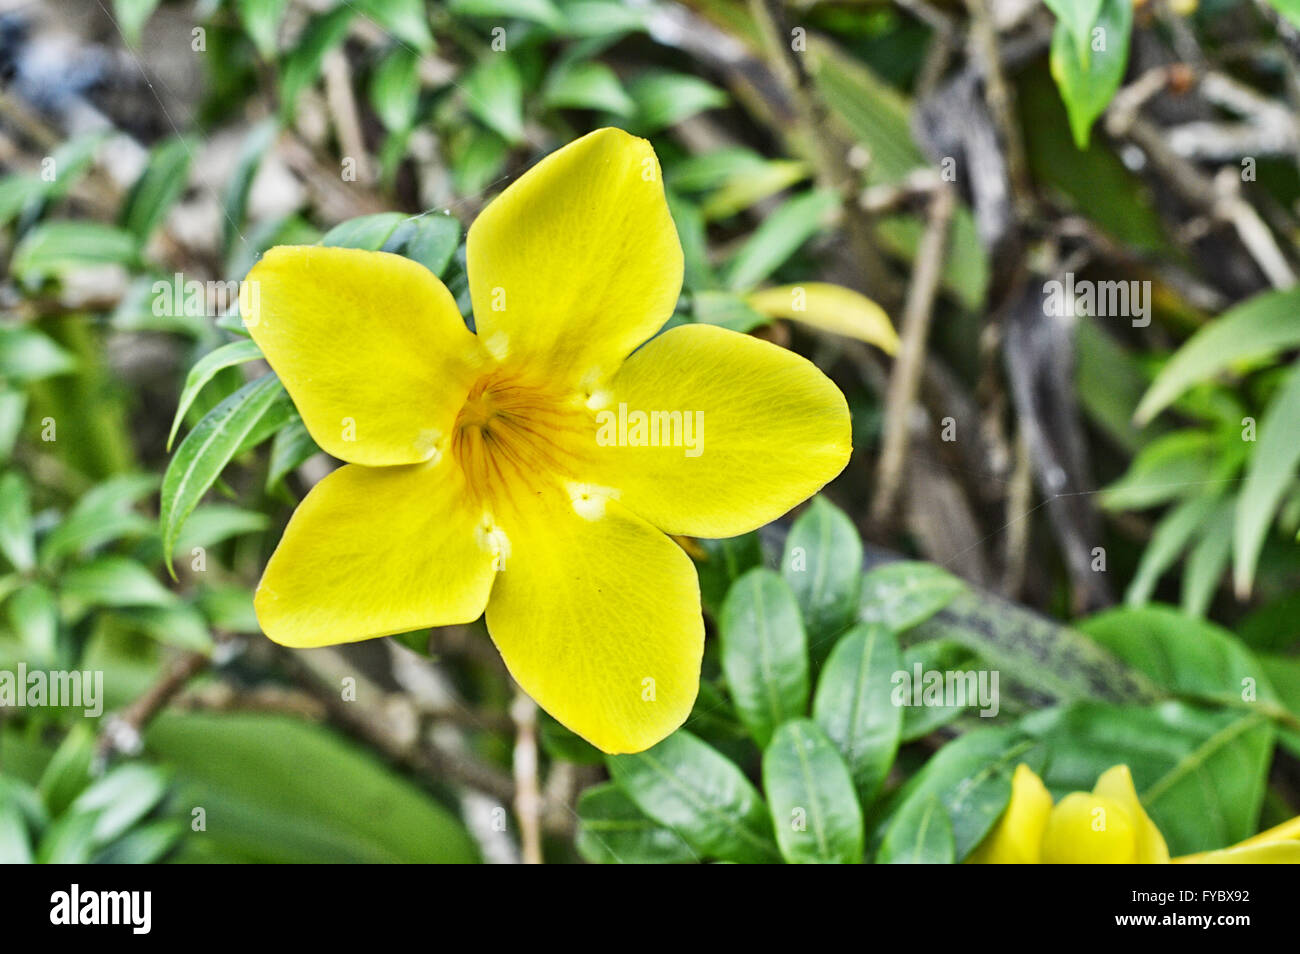 Yellow trumpet flower tree in nature stock photo 102909662 alamy yellow trumpet flower tree in nature mightylinksfo